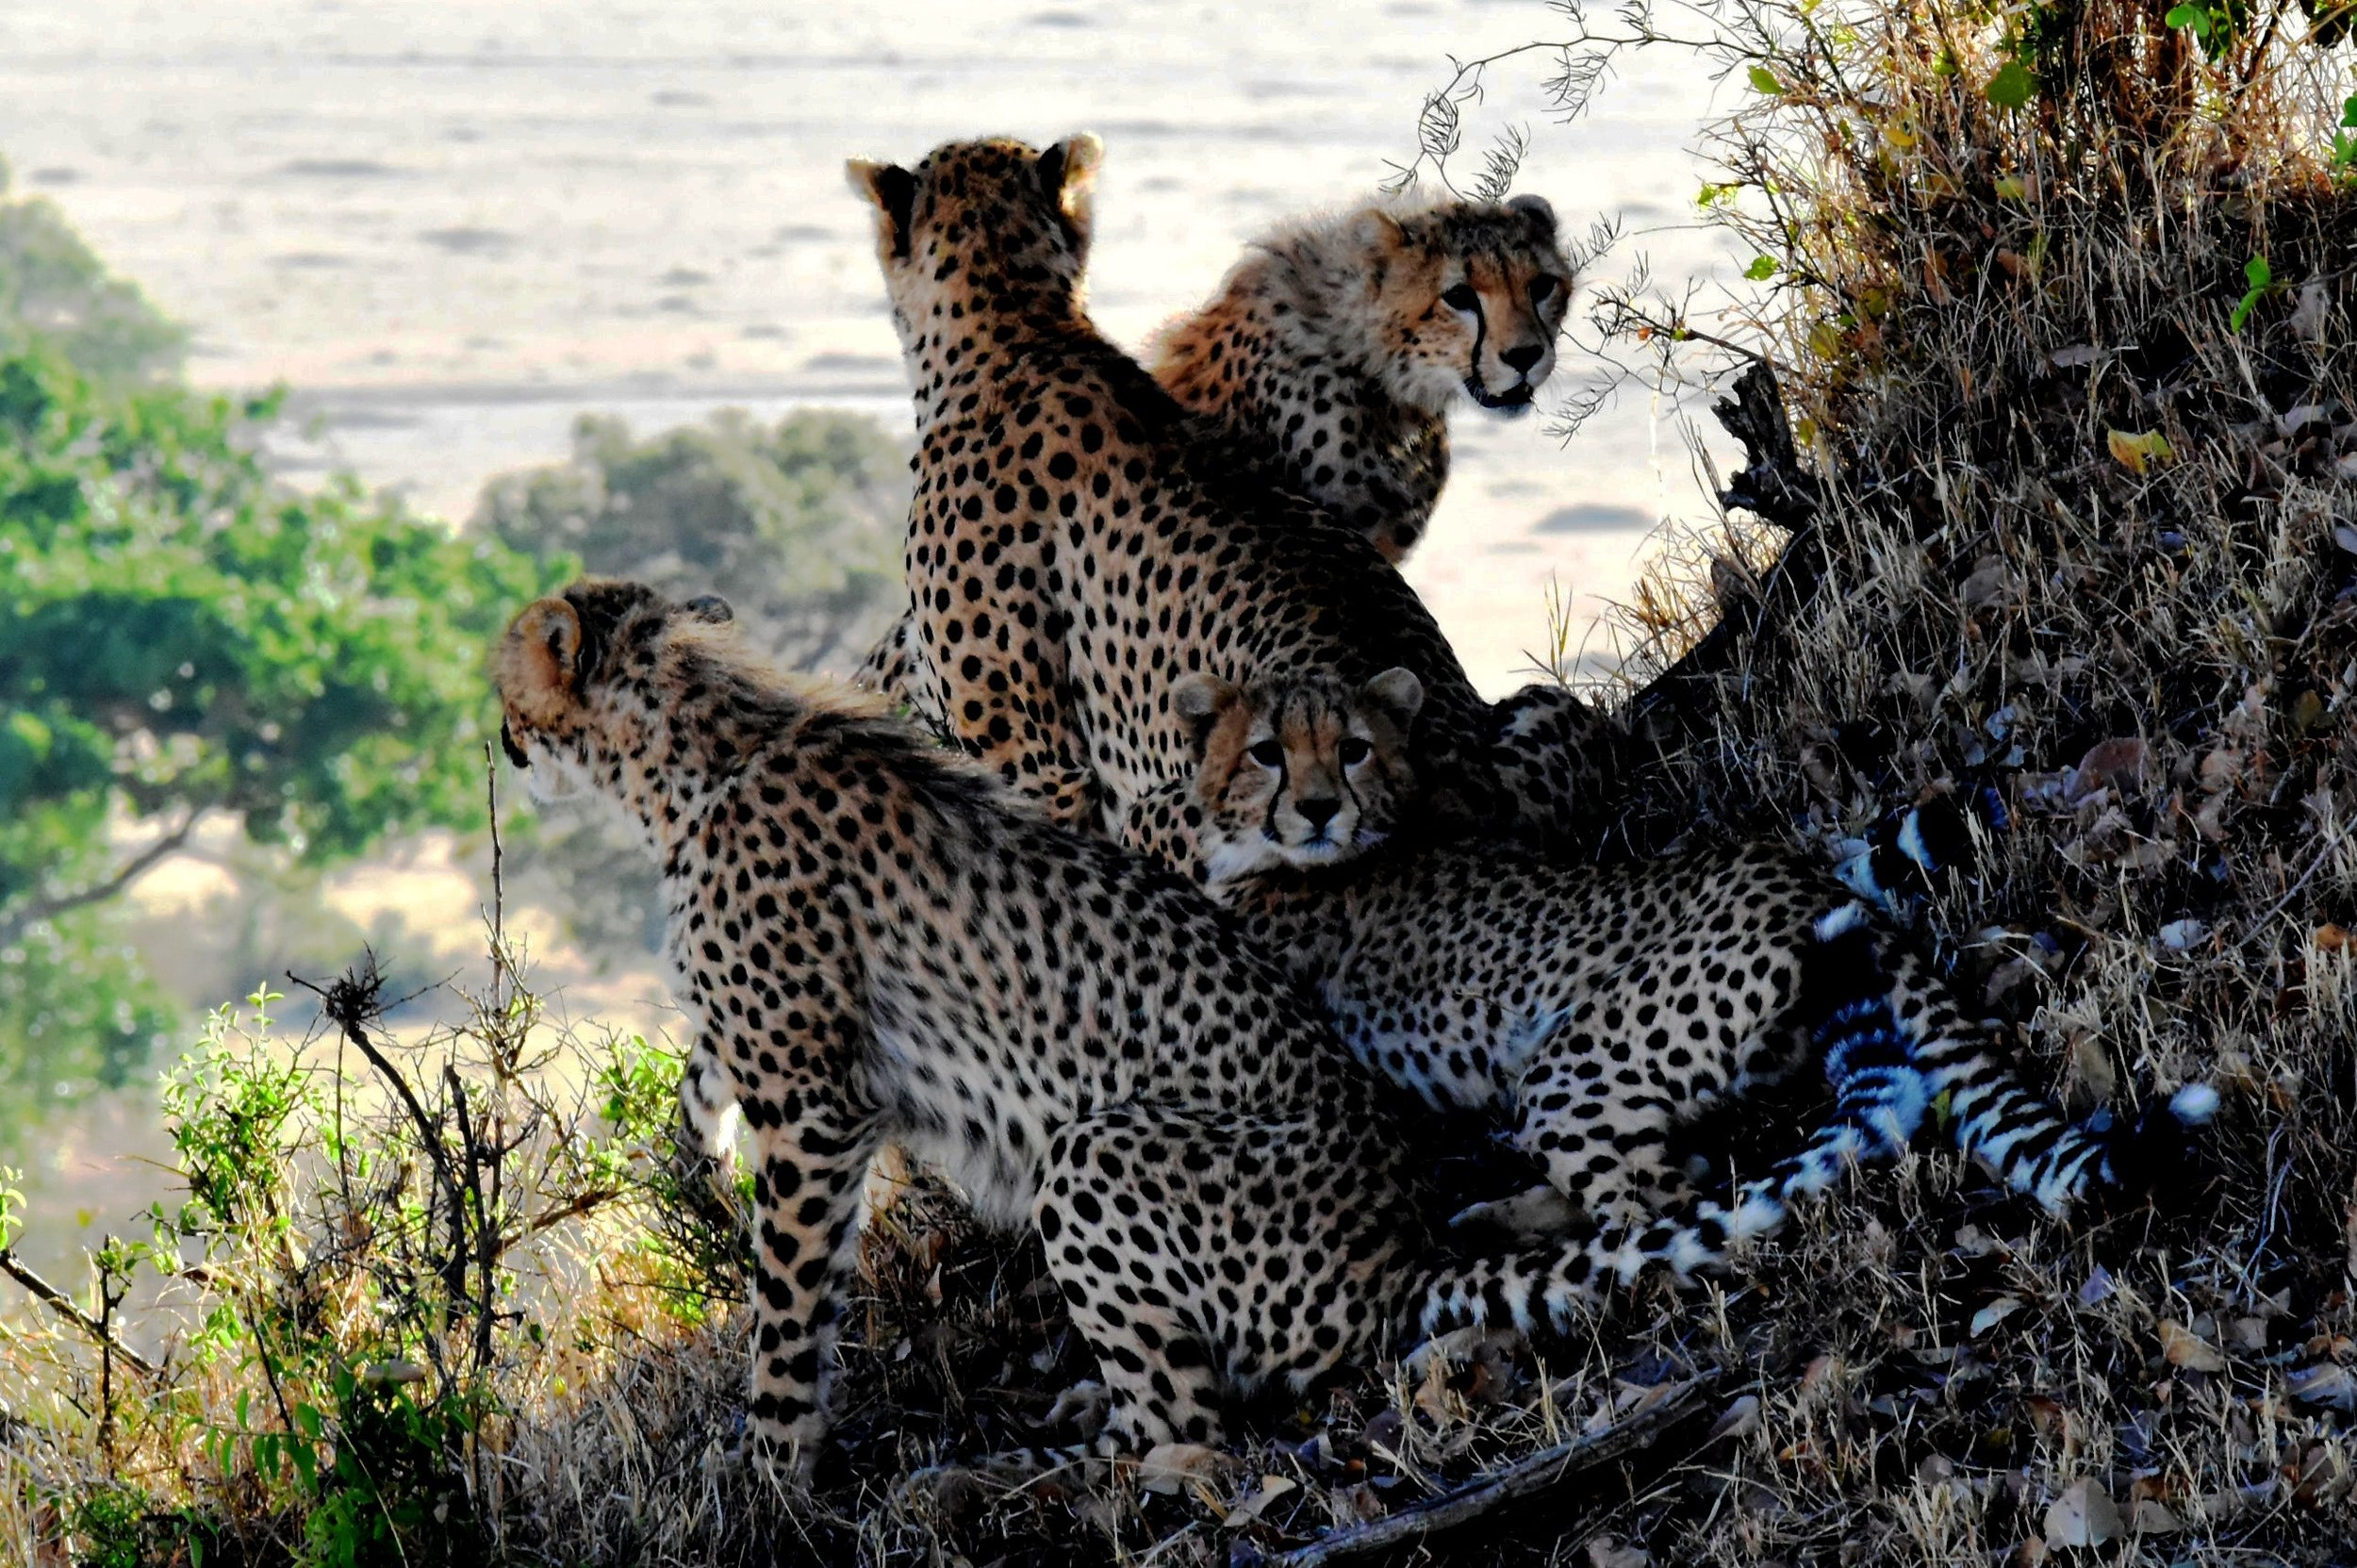 leopards-family-animals-tanzania-160459.jpeg